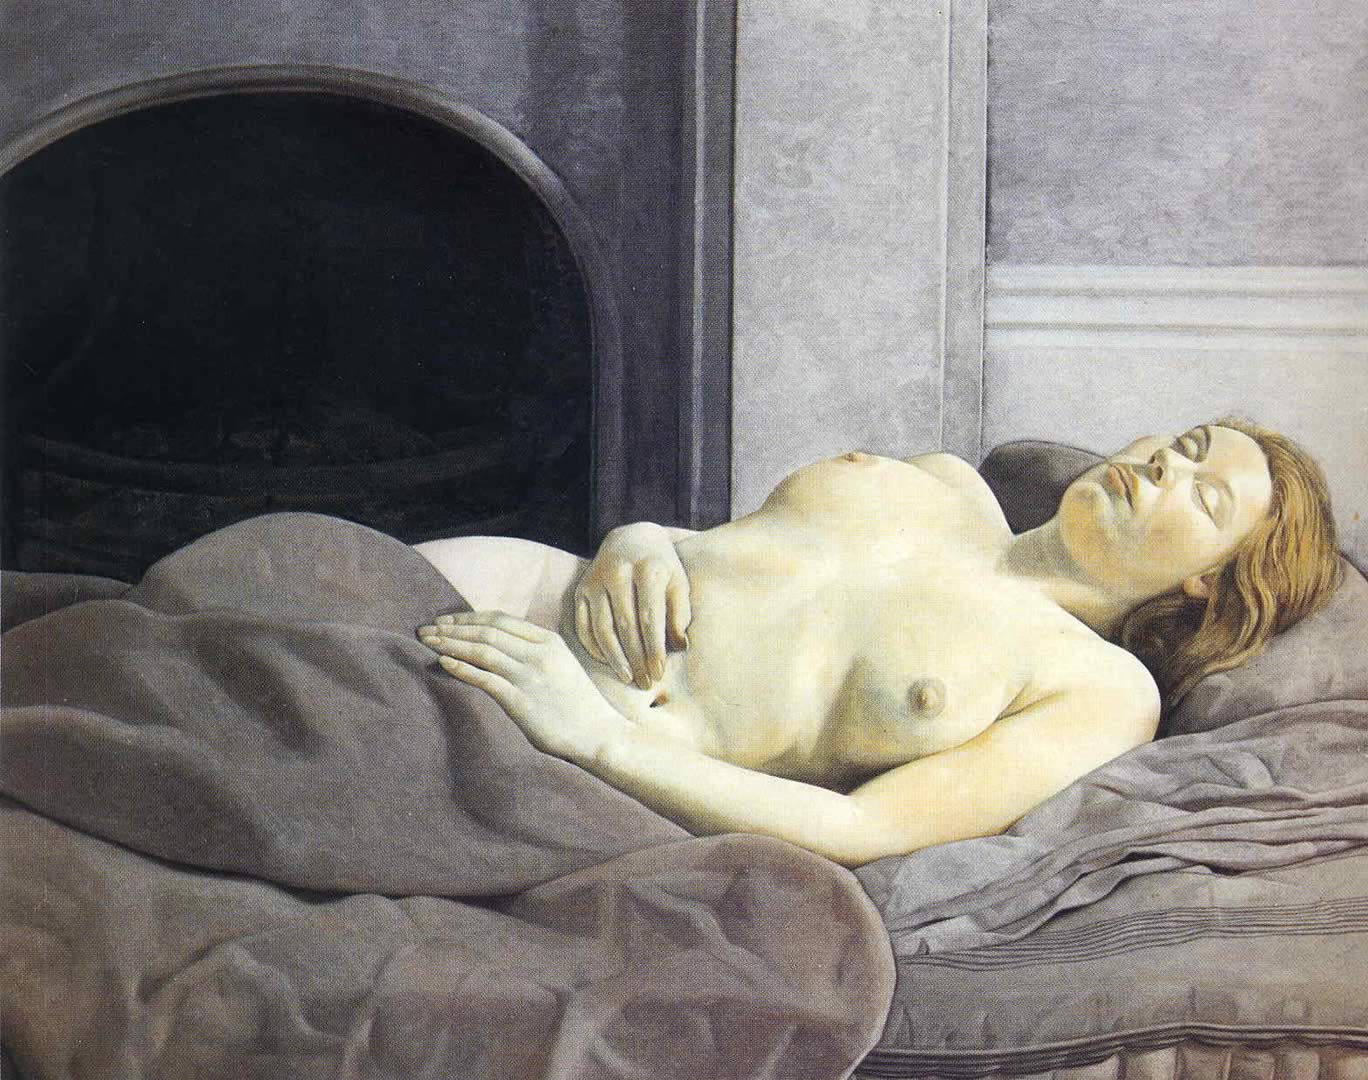 Sleeping Nude, Lucian Freud, 1950